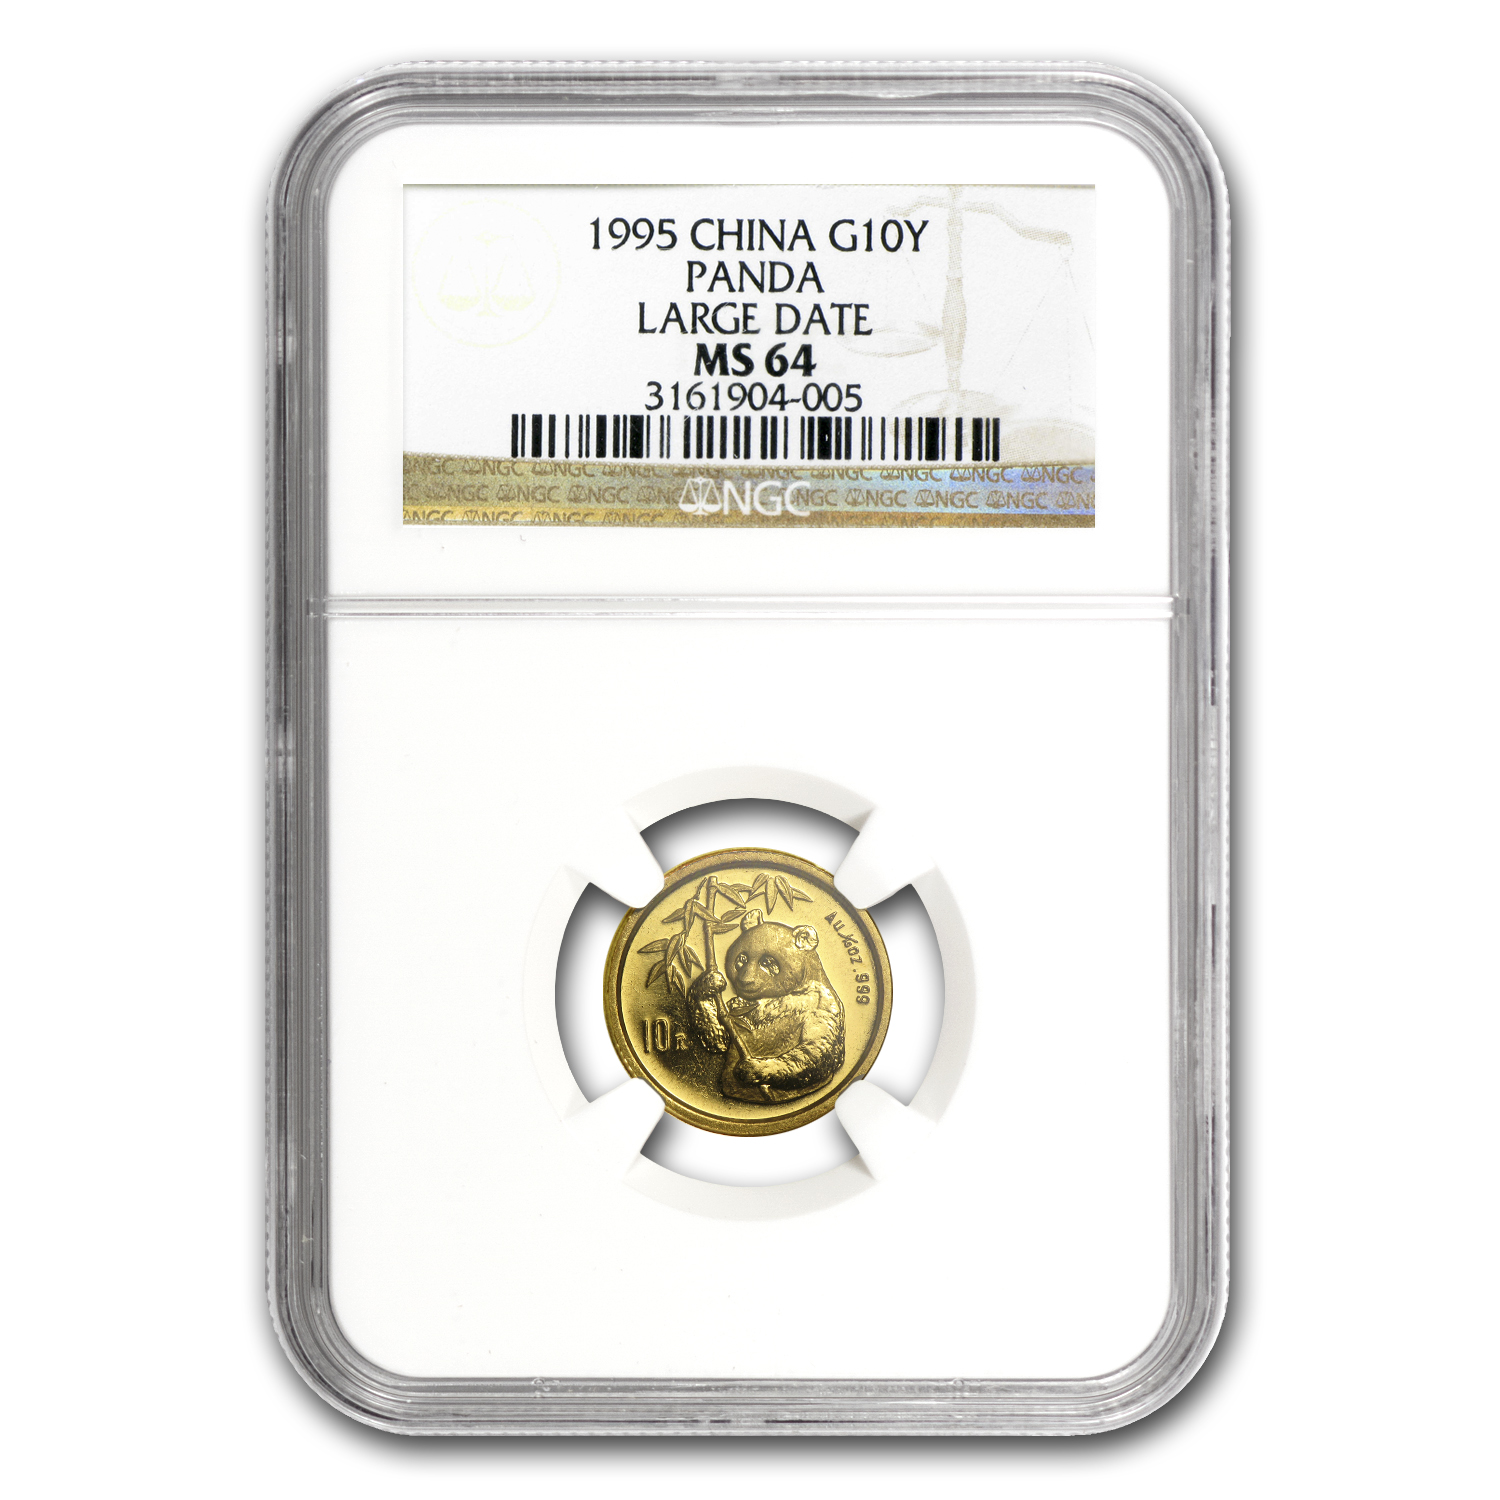 1995 (1/10 oz) Gold Chinese Pandas - MS-64 NGC Large Date